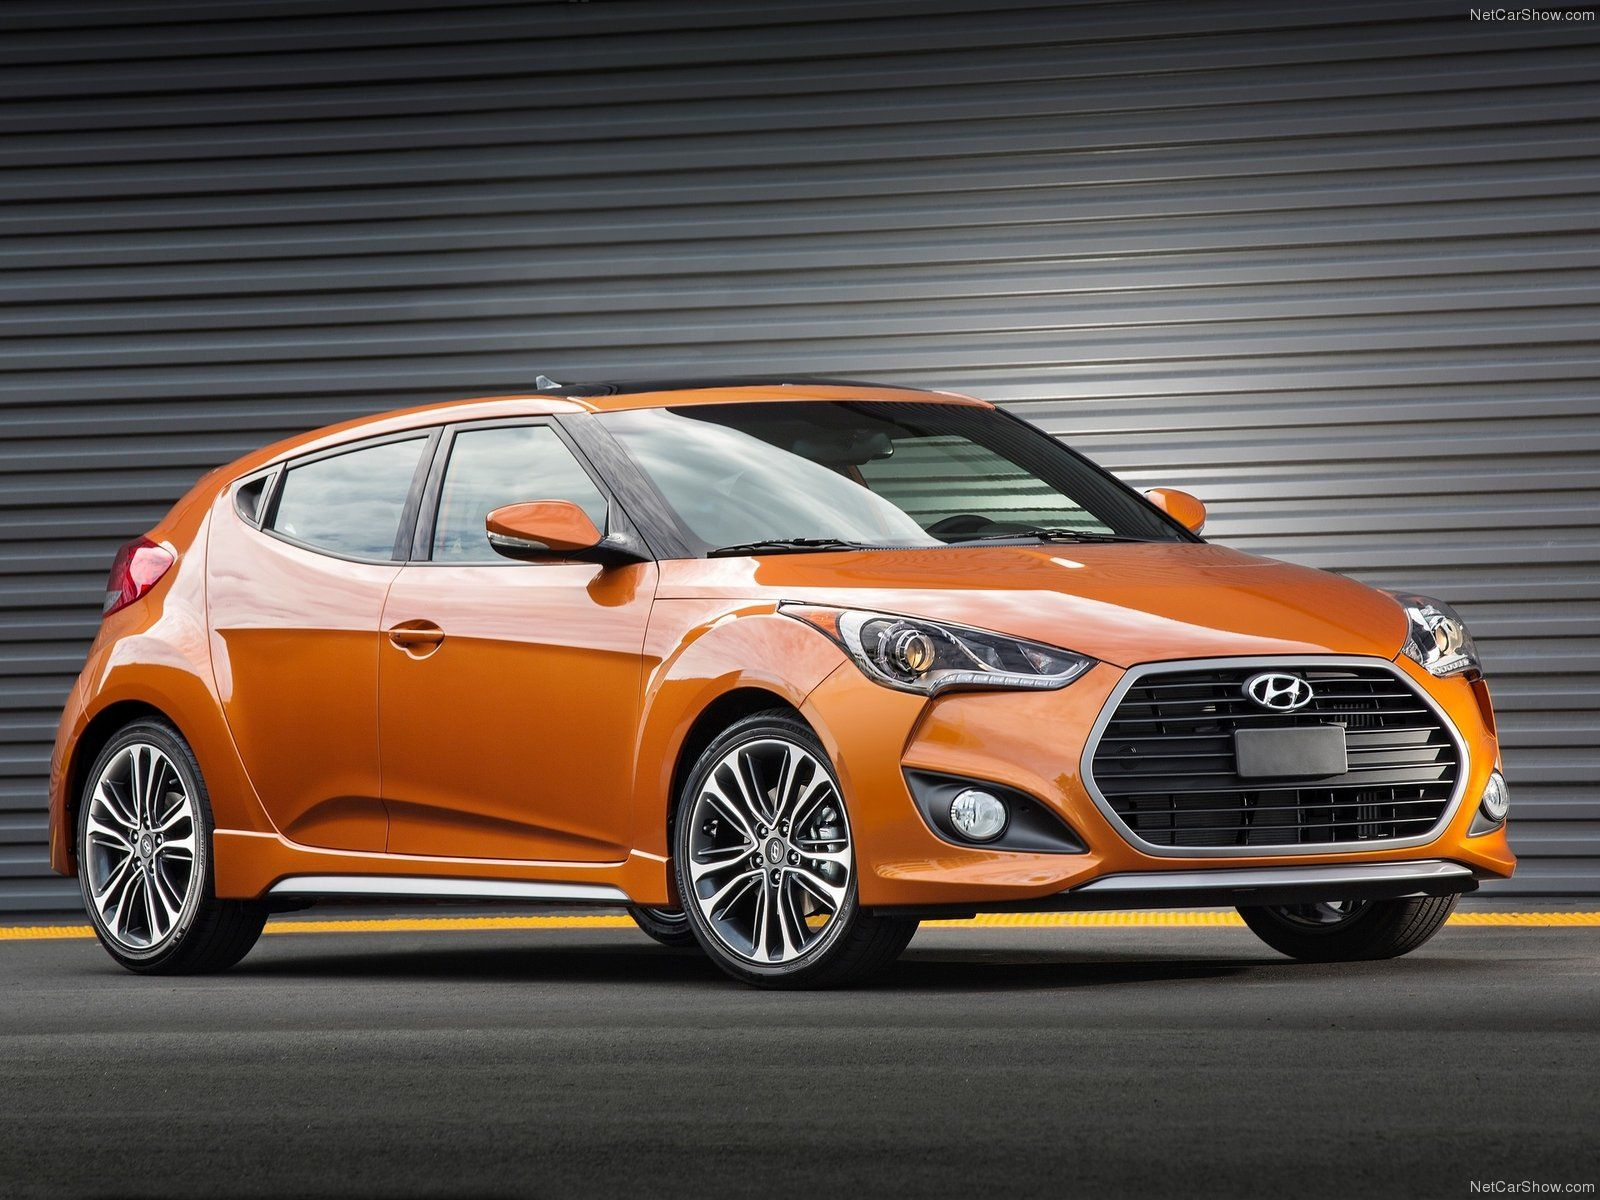 Egypt Car Market Now Led By Hyundai Group That Has Overtaken G M After Years Of Steady Growth In The First Two M Hyundai Veloster Veloster Turbo Hyundai Cars